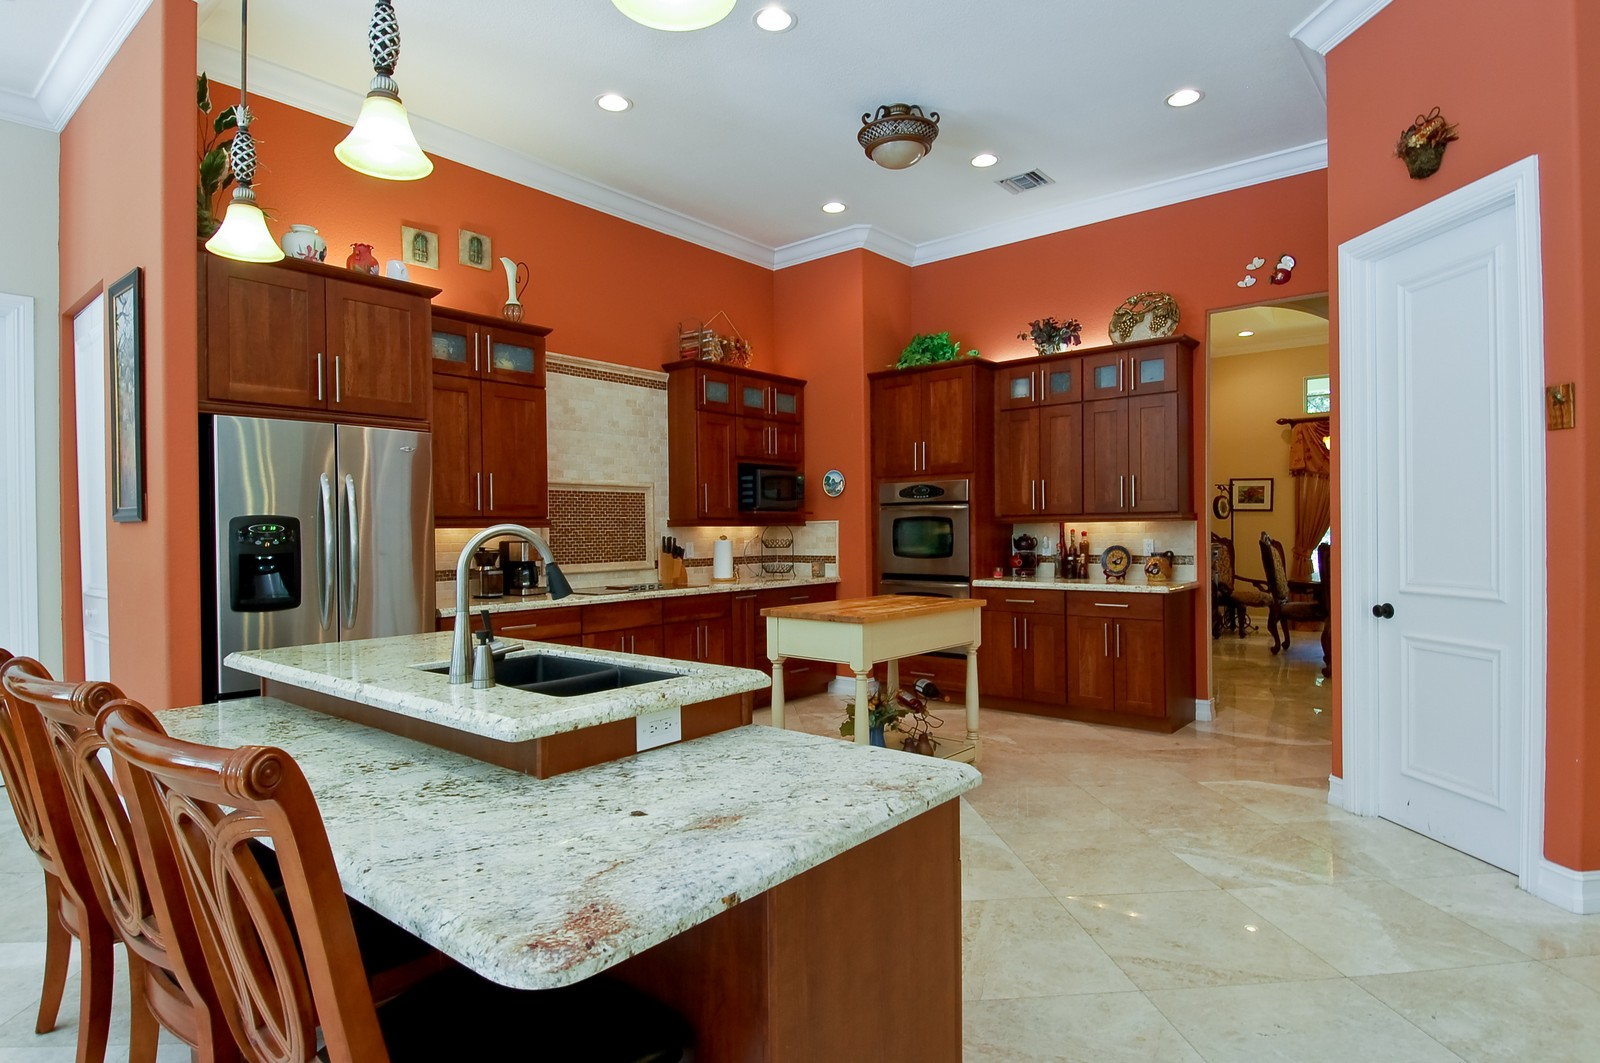 Real Estate Photography - 5400 Woodlanden Ln, Ft Lauderdale, FL, 33021 - Kitchen